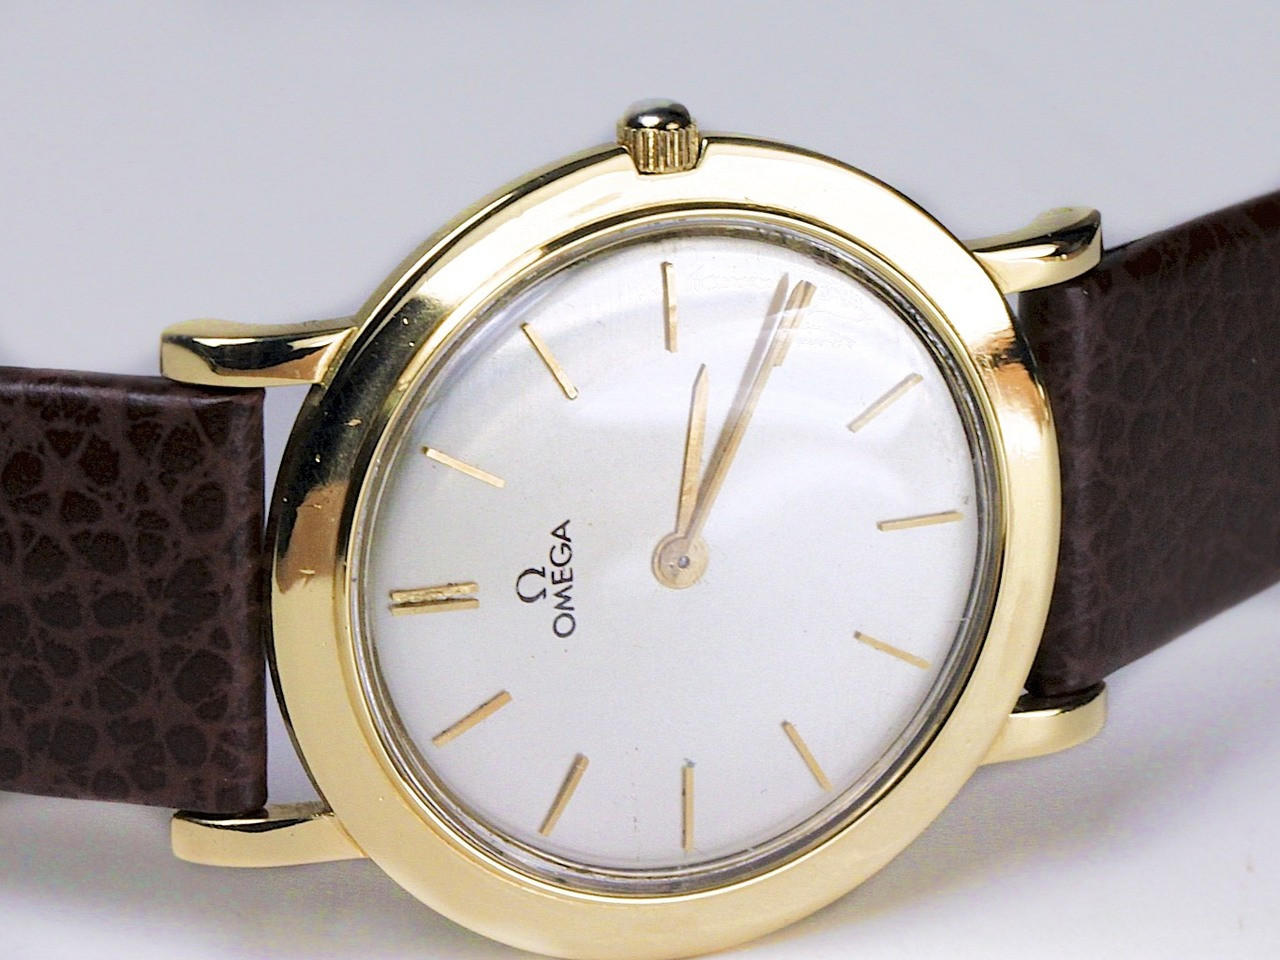 Silver Dial Detail - Omega Watch - Vintage 18K Yellow Gold 14718 - www.Legendoftime.com - Chicago Watch Center